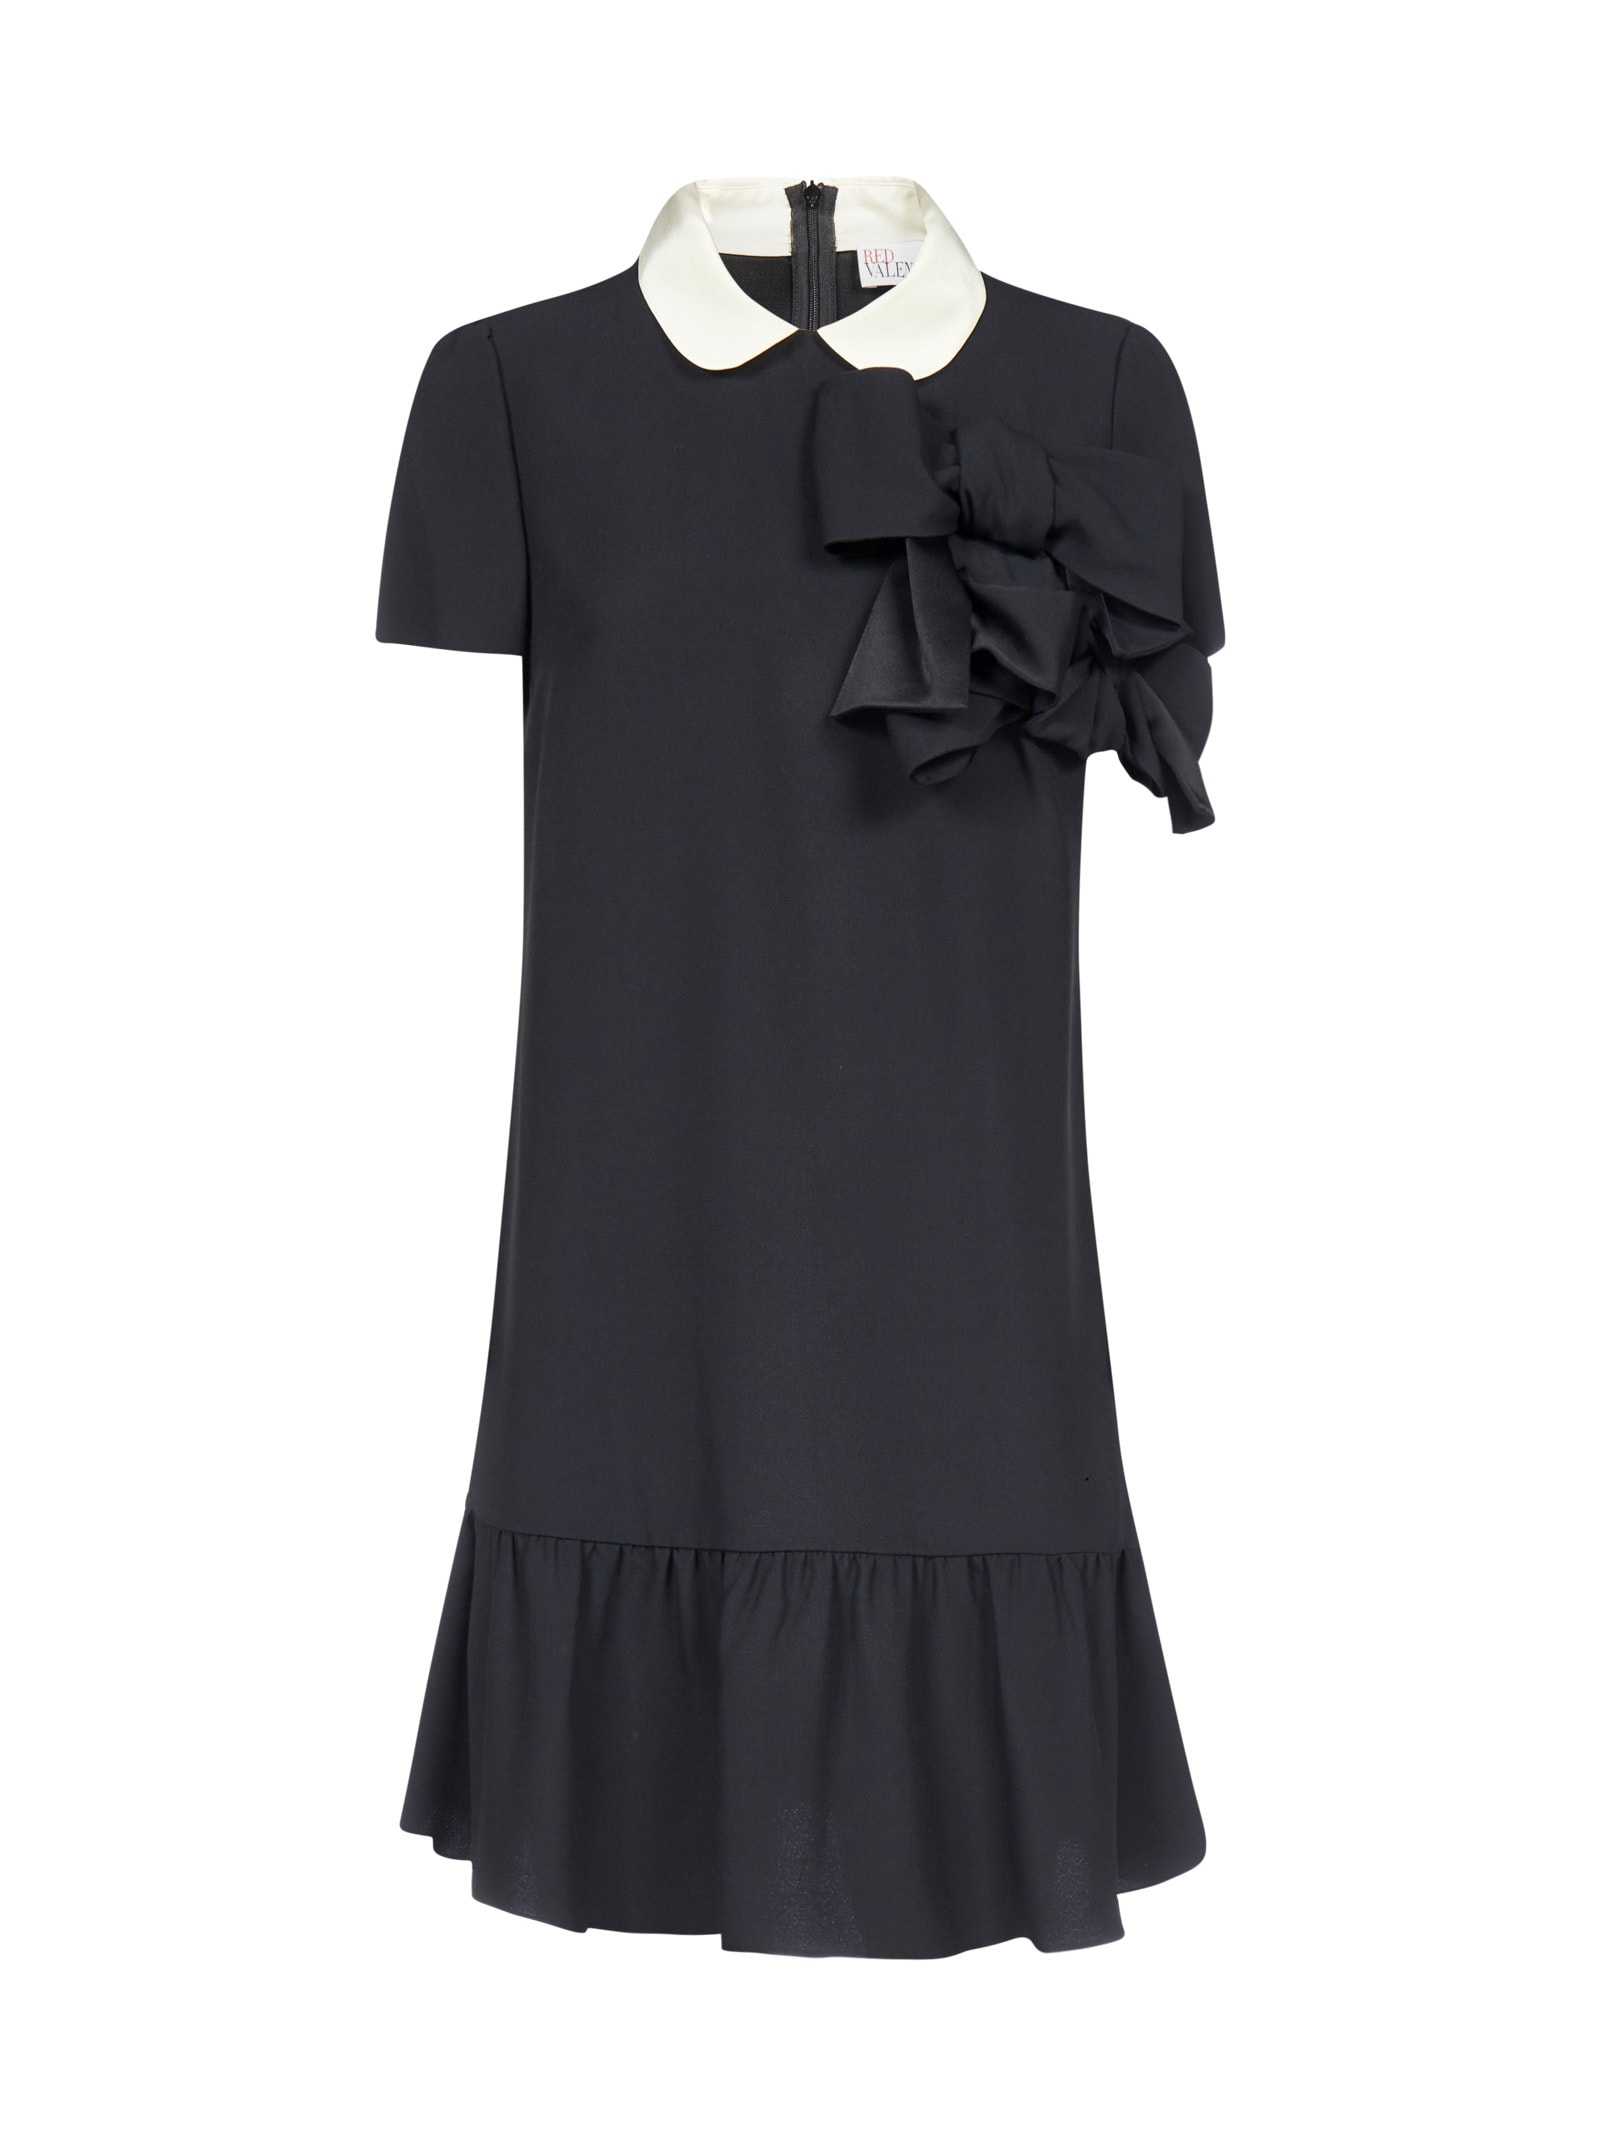 Buy RED Valentino Bow-detail Viscose-blend Dress online, shop RED Valentino with free shipping